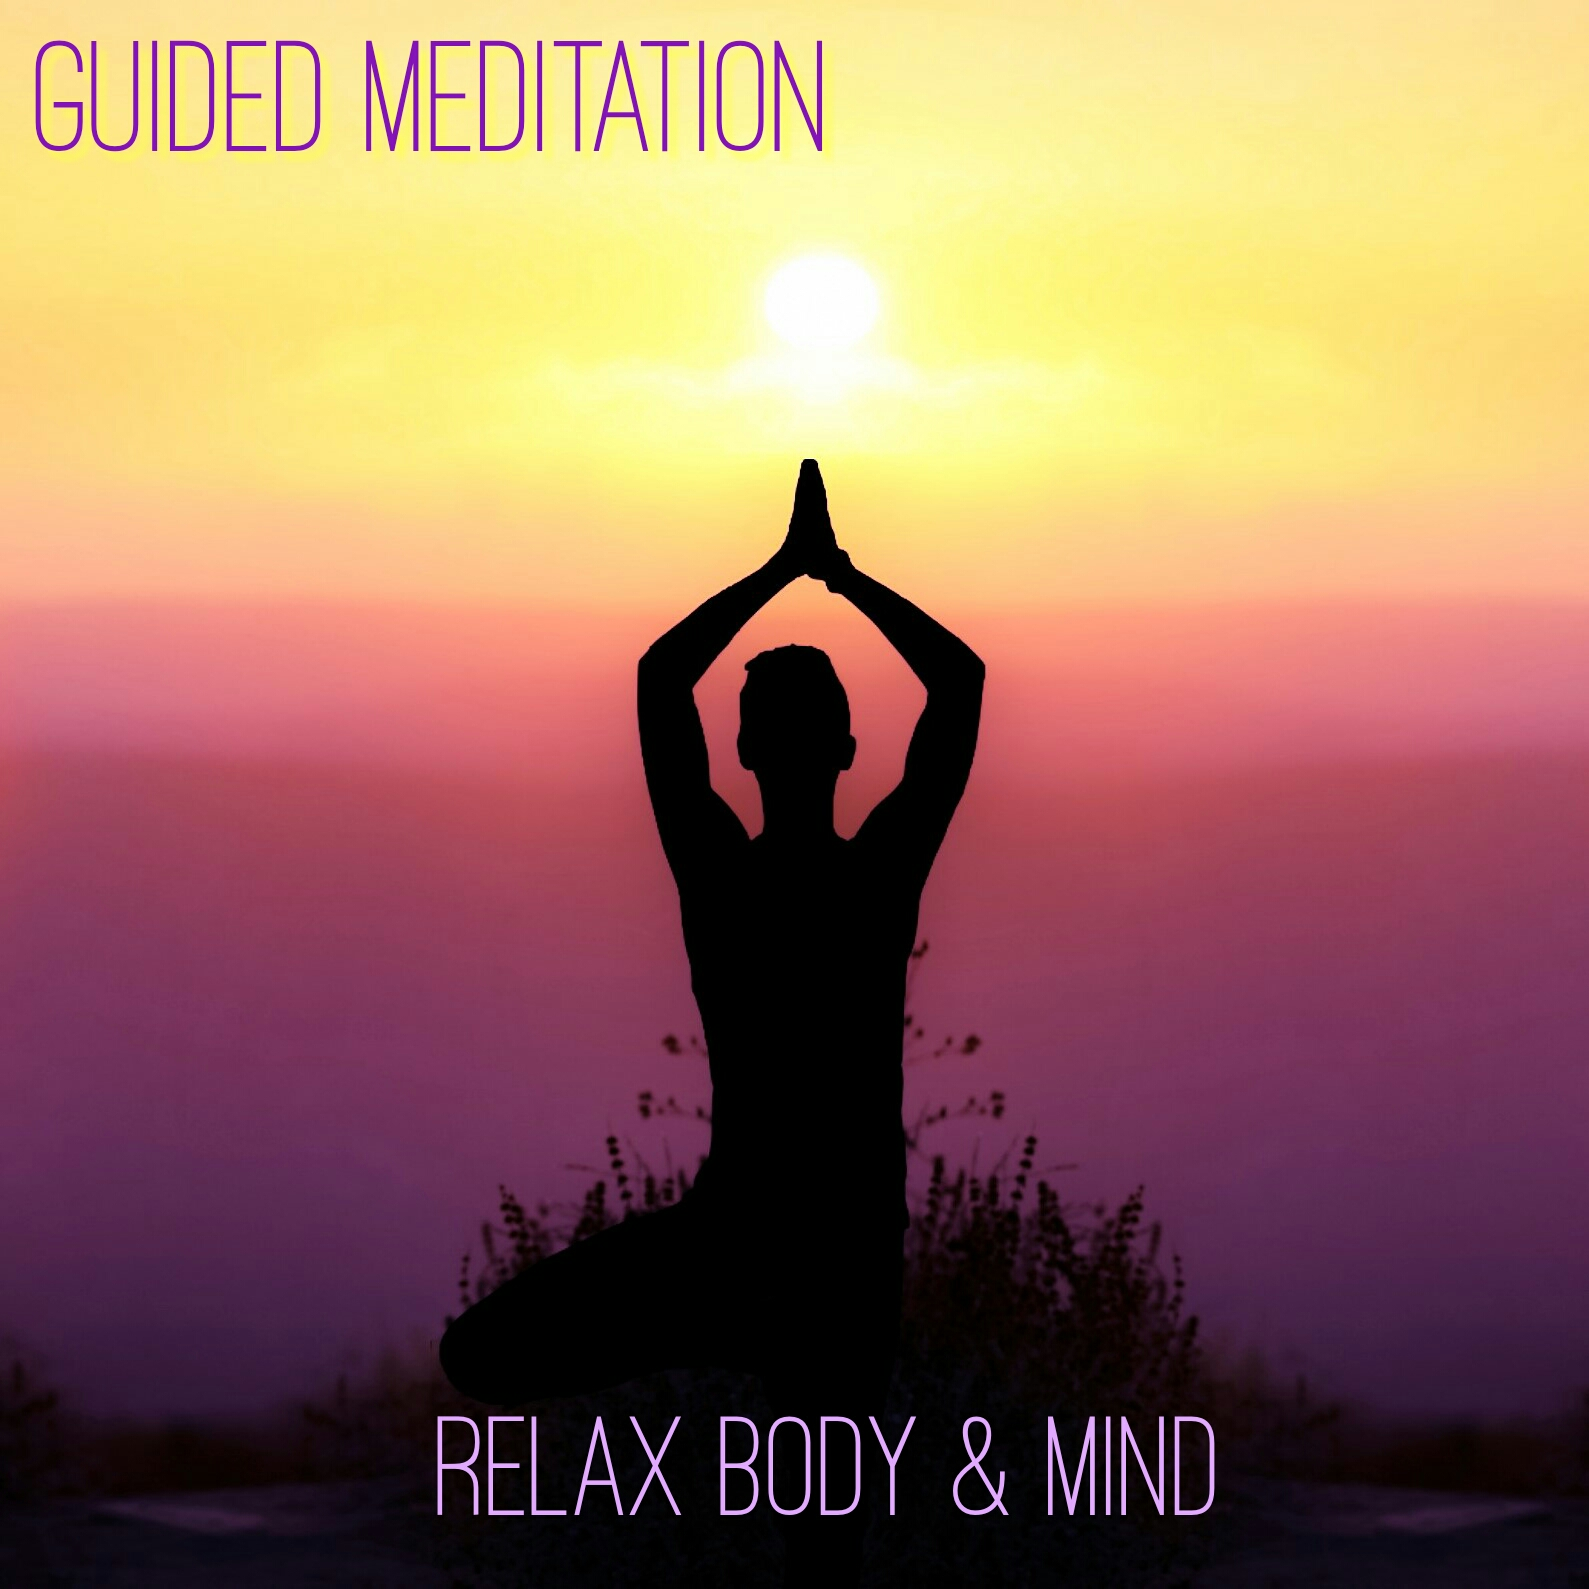 Relax Body & Mind Guided Meditation 10 minute Mp3   Music2relax com